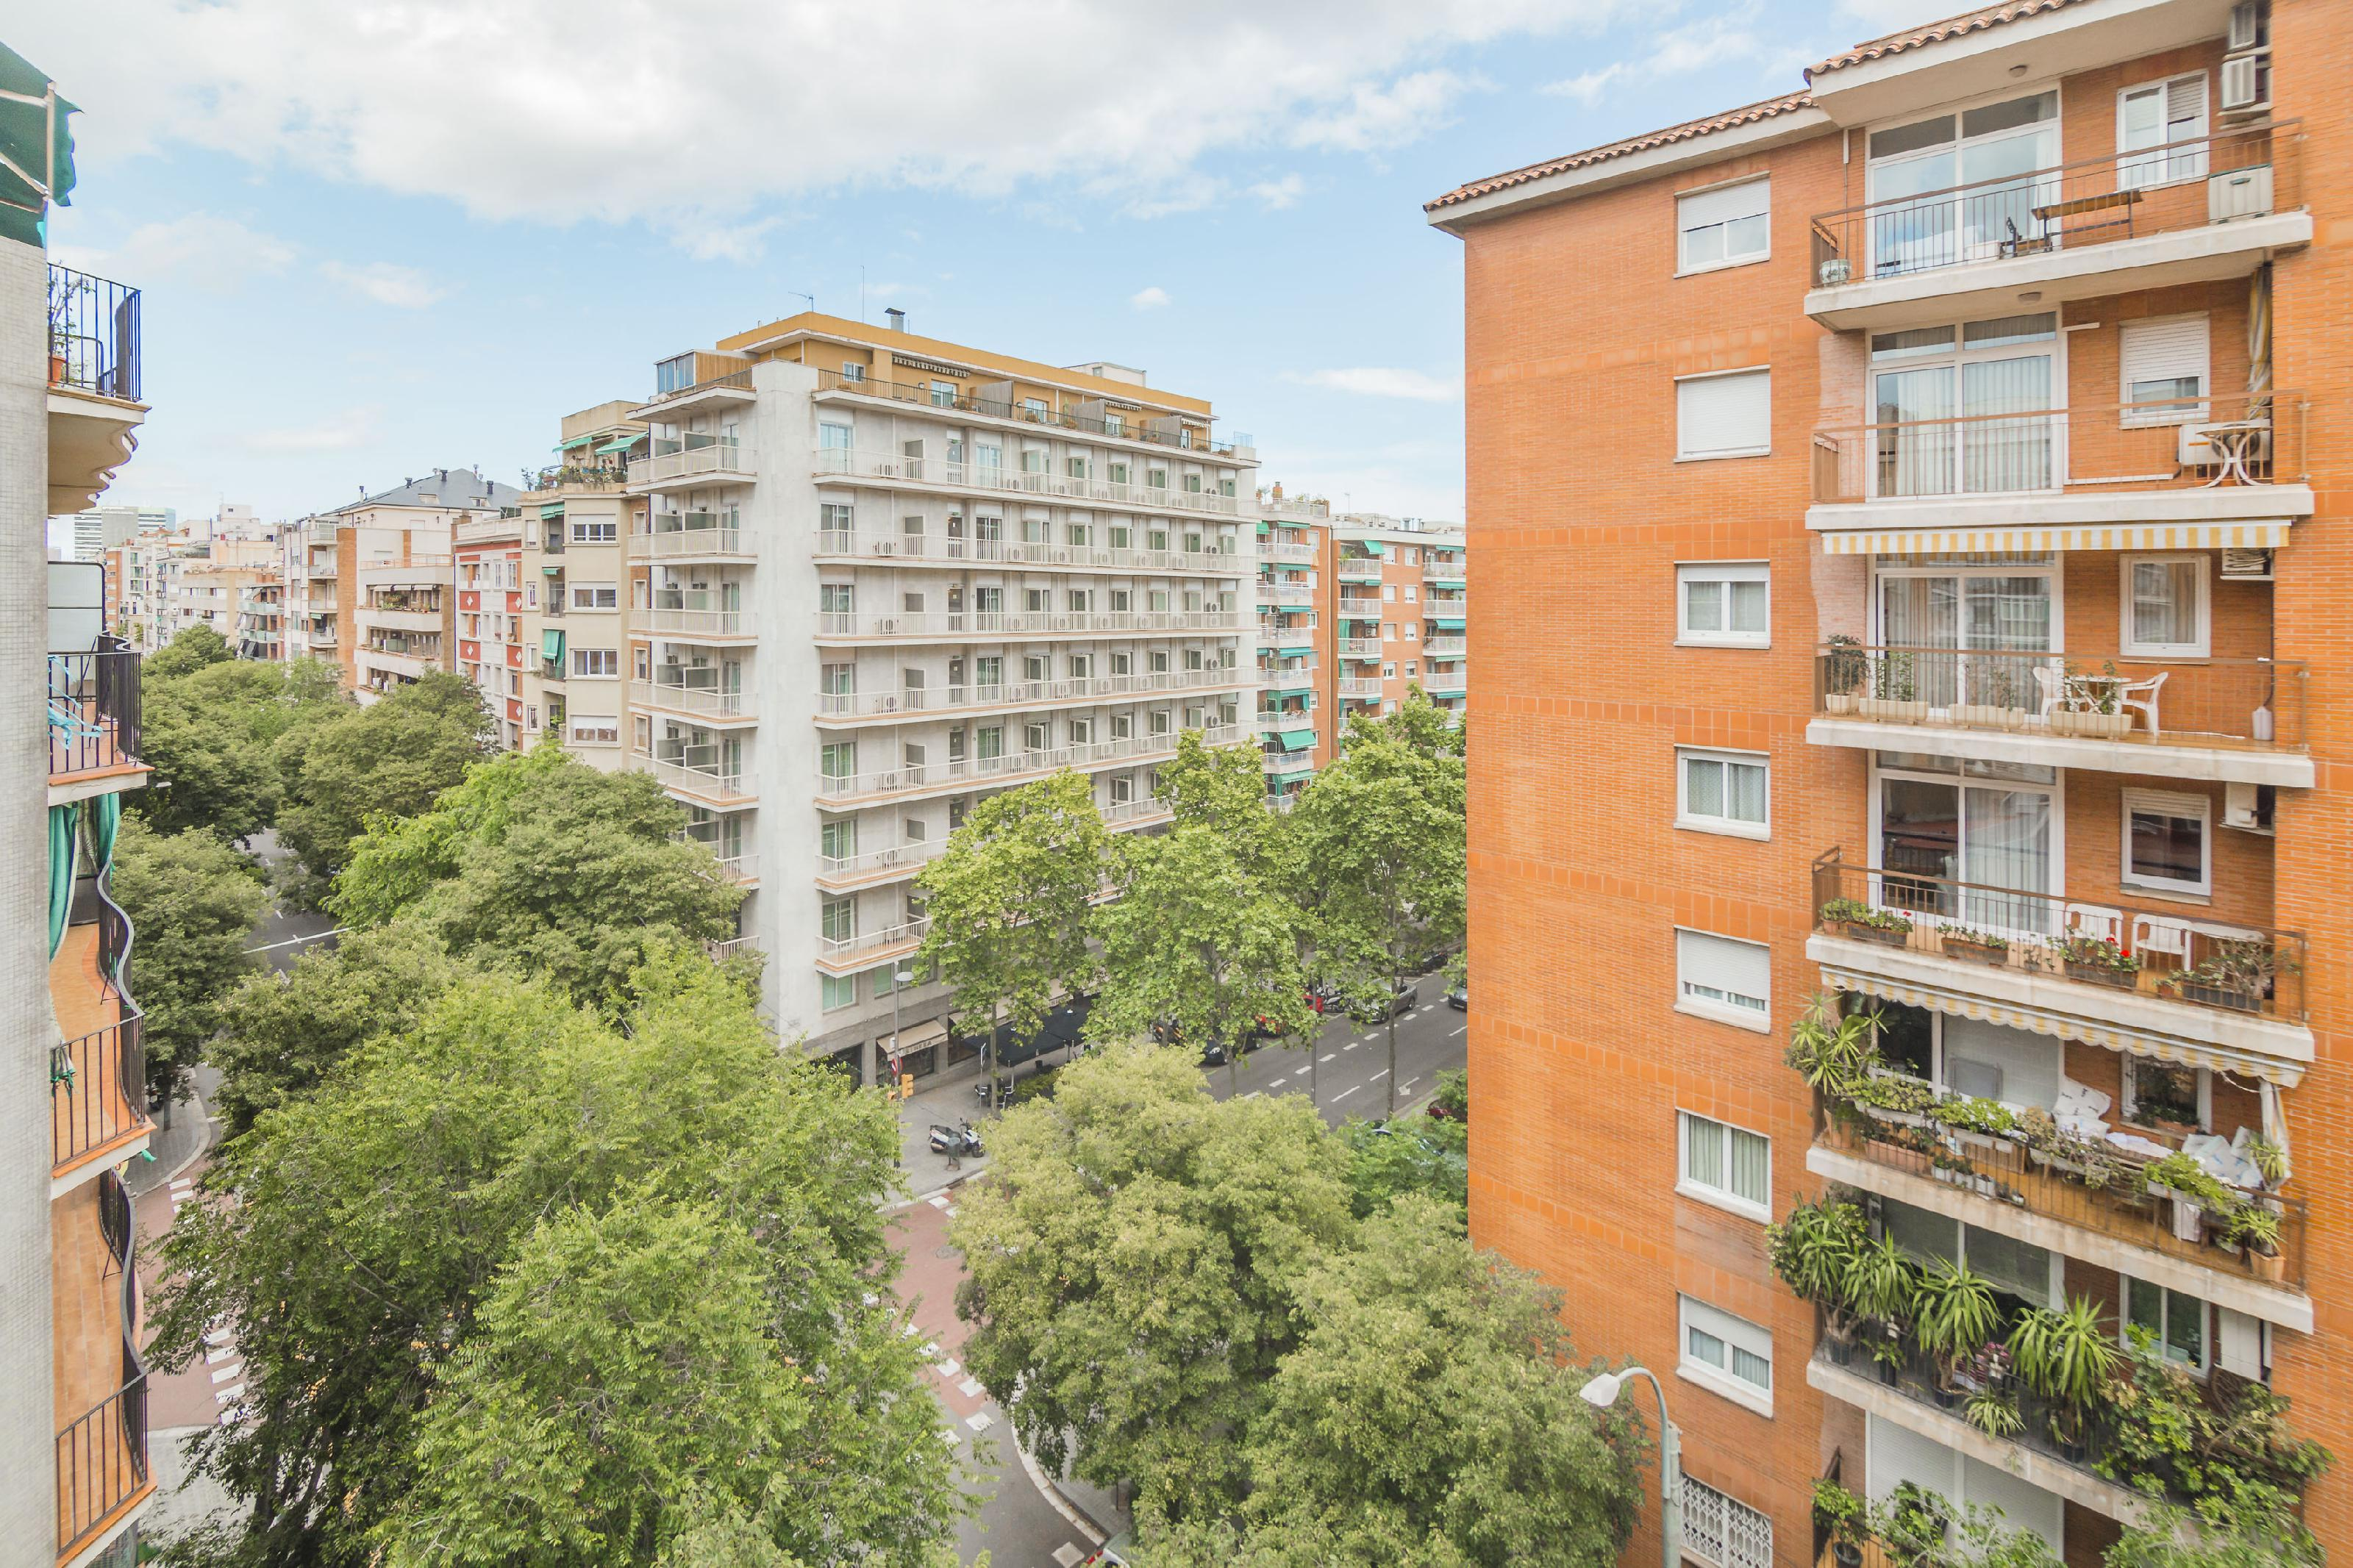 239426 Flat for sale in Les Corts, Les Corts 9